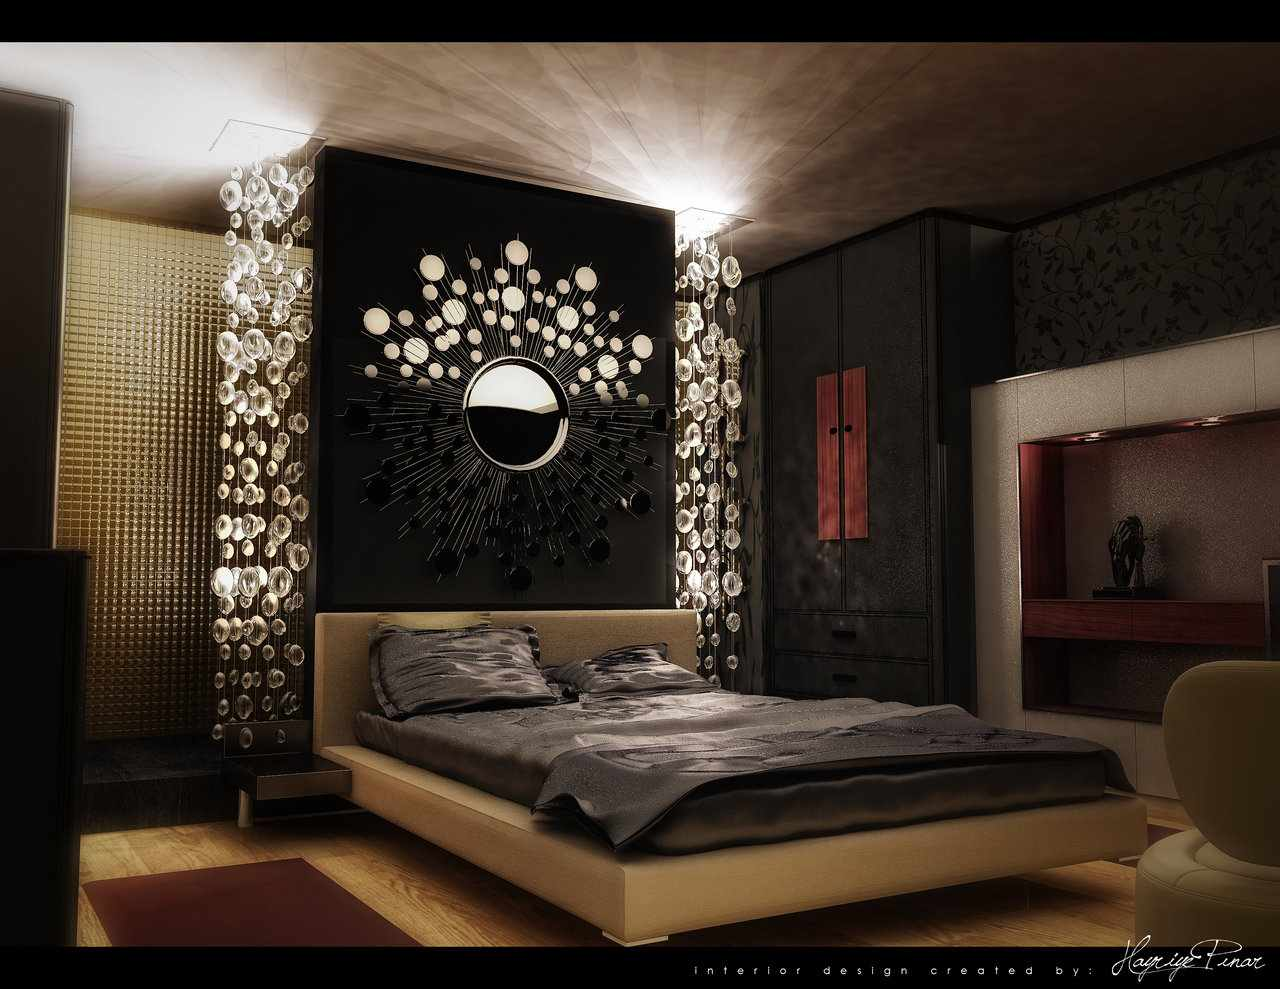 Ikea bedroom ideas ikea bedroom 2014 ideas room design for Ideas for decor in bedroom